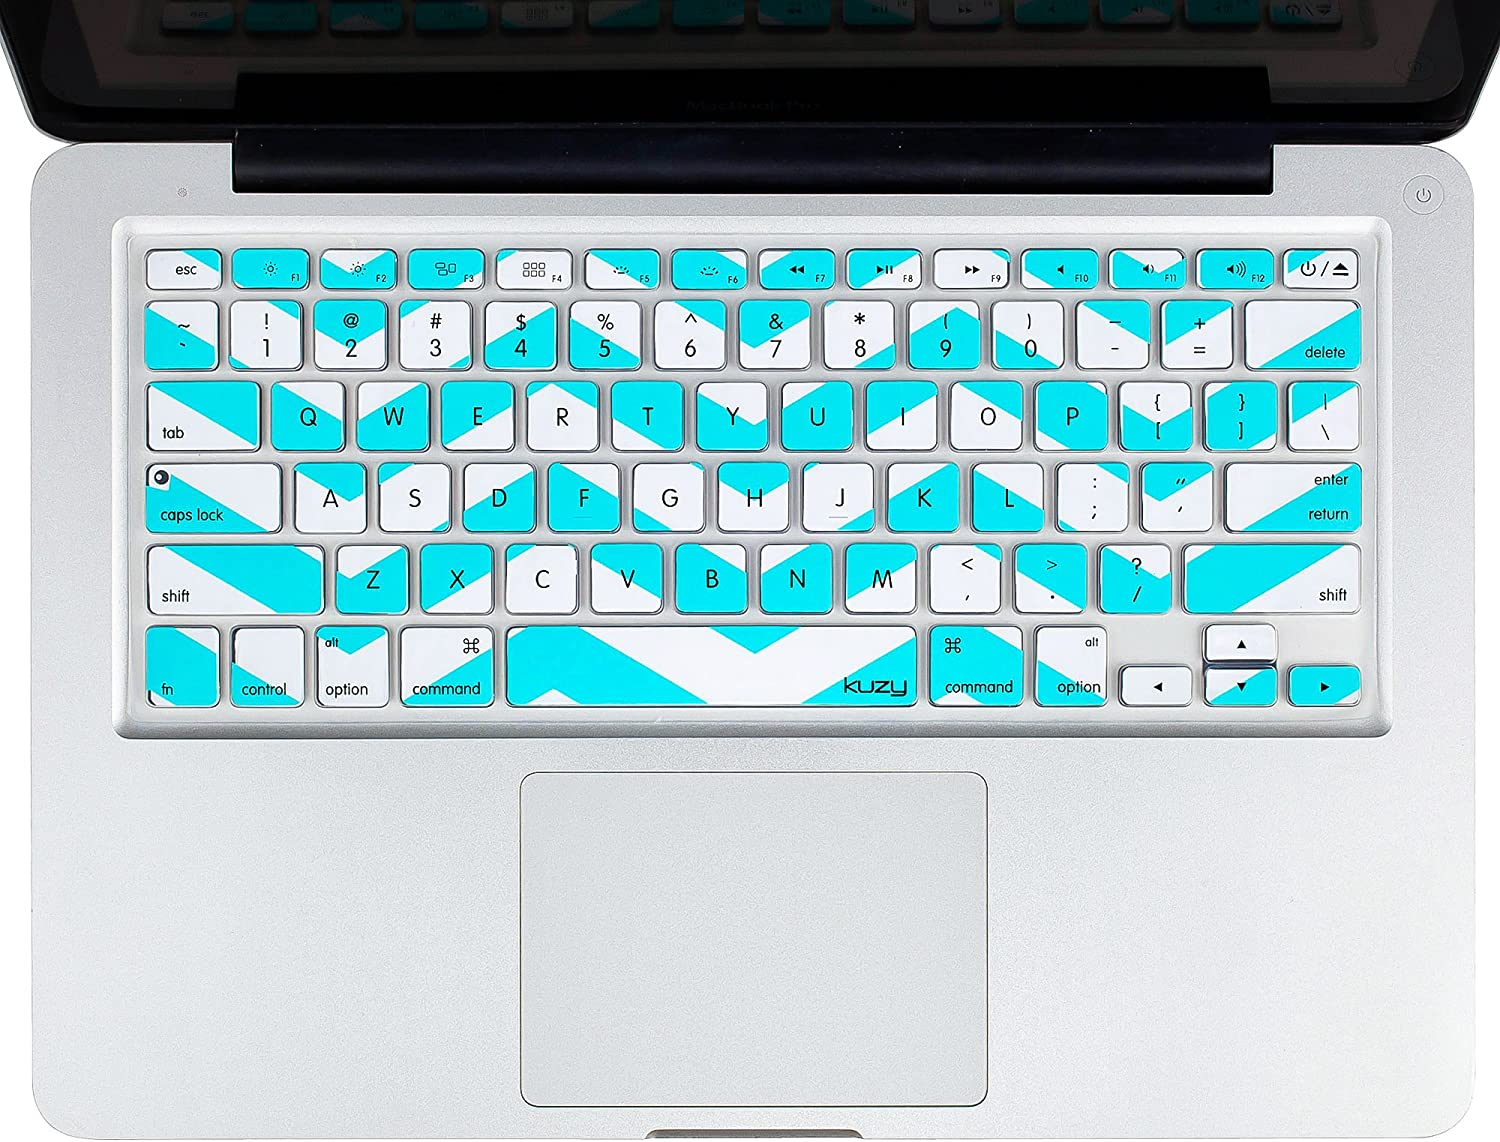 Kuzy - MacBook Keyboard Cover for Older Version MacBook Pro 13 15 17 inch and MacBook Air 13 inch, iMac Wireless Keyboard, Apple Computer Accessories Key Board Silicone Skin Protector - Chevron Teal